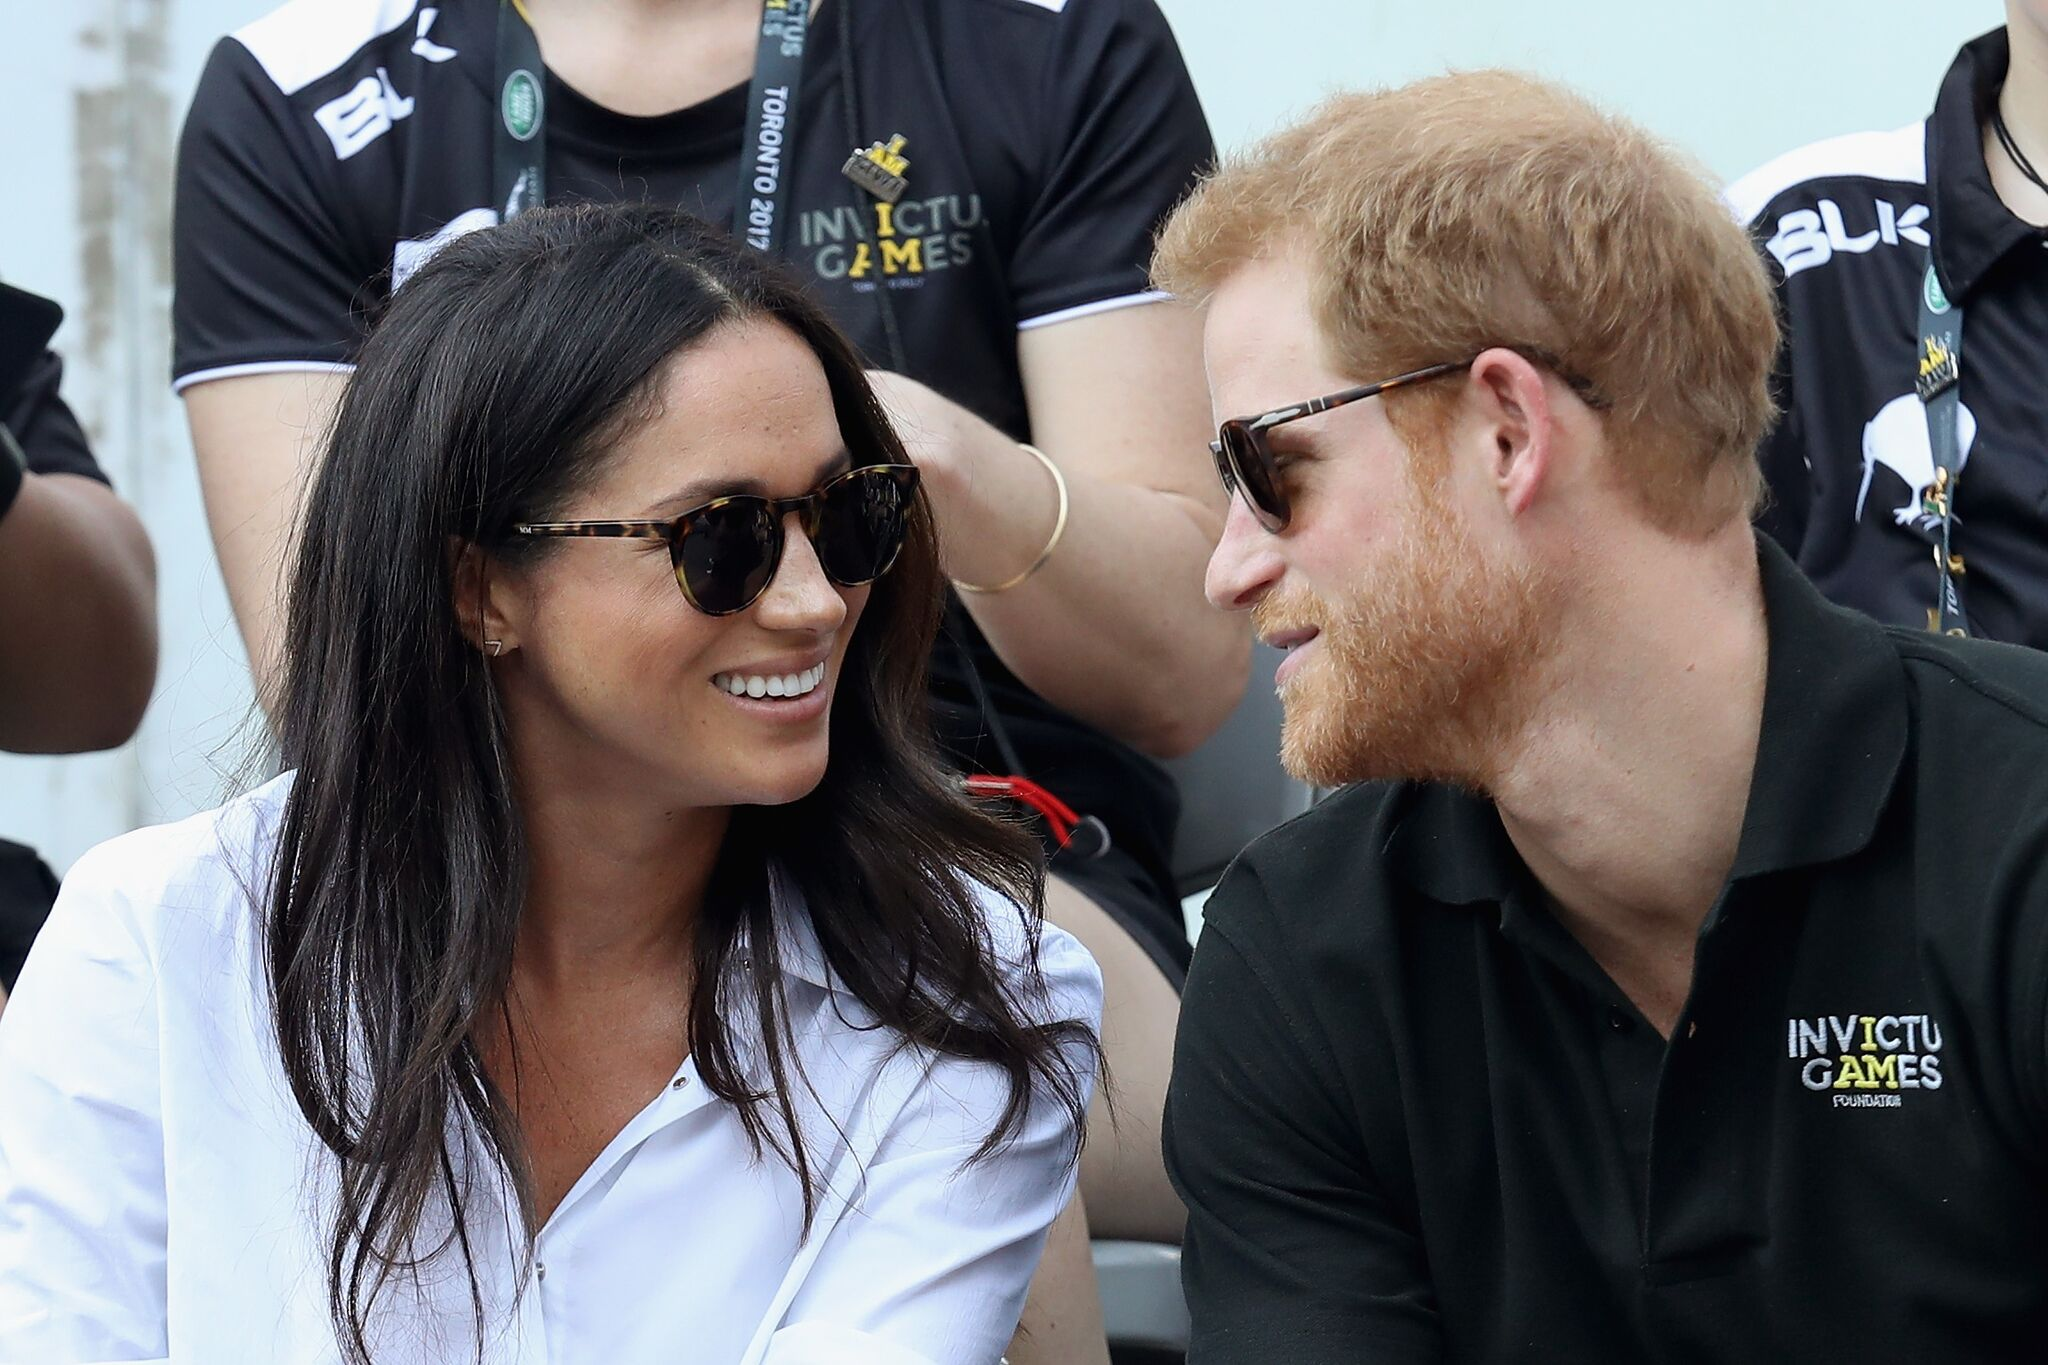 Le prince et Meghan Markle à un match de tennis en fauteuil roulante (Jeux Invictus 2017) | Getty Images / Global Images Ukraine